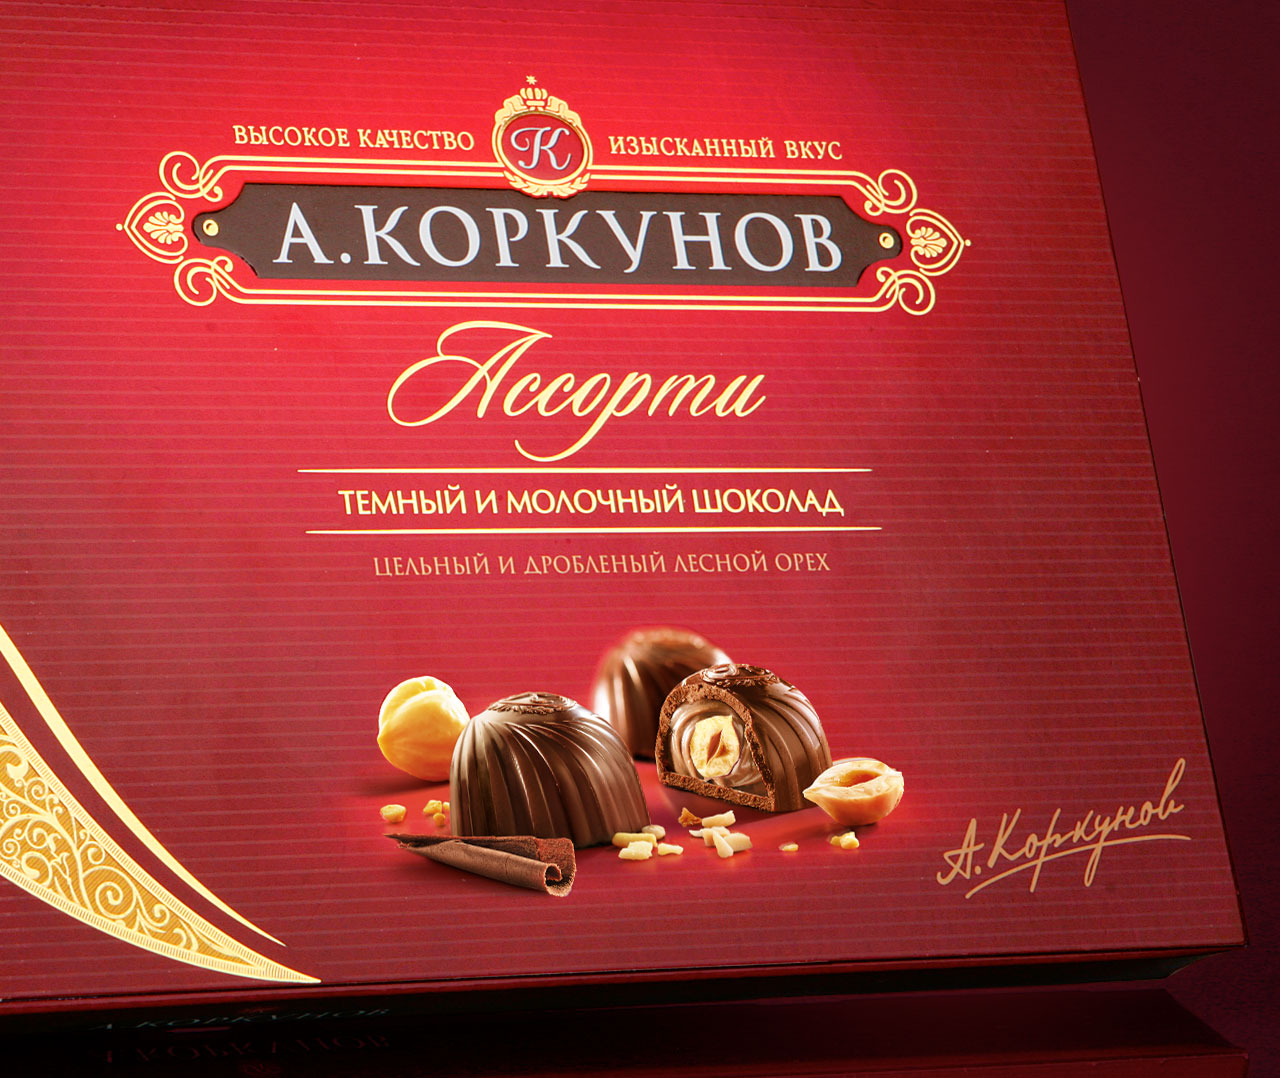 korkunov-packaging-detail-01.jpg